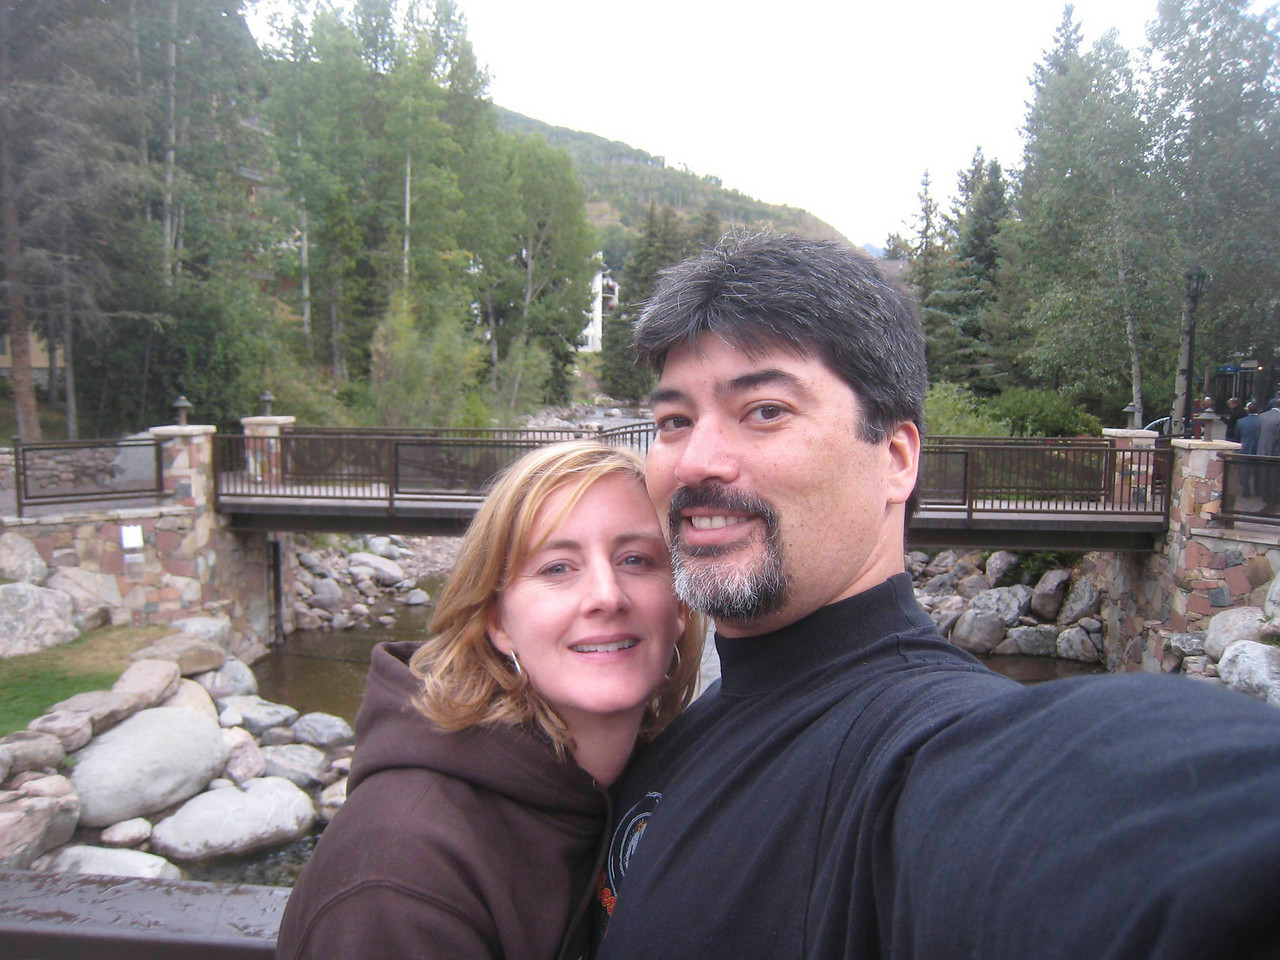 Maria and I create our own photo opportunity in Vail.